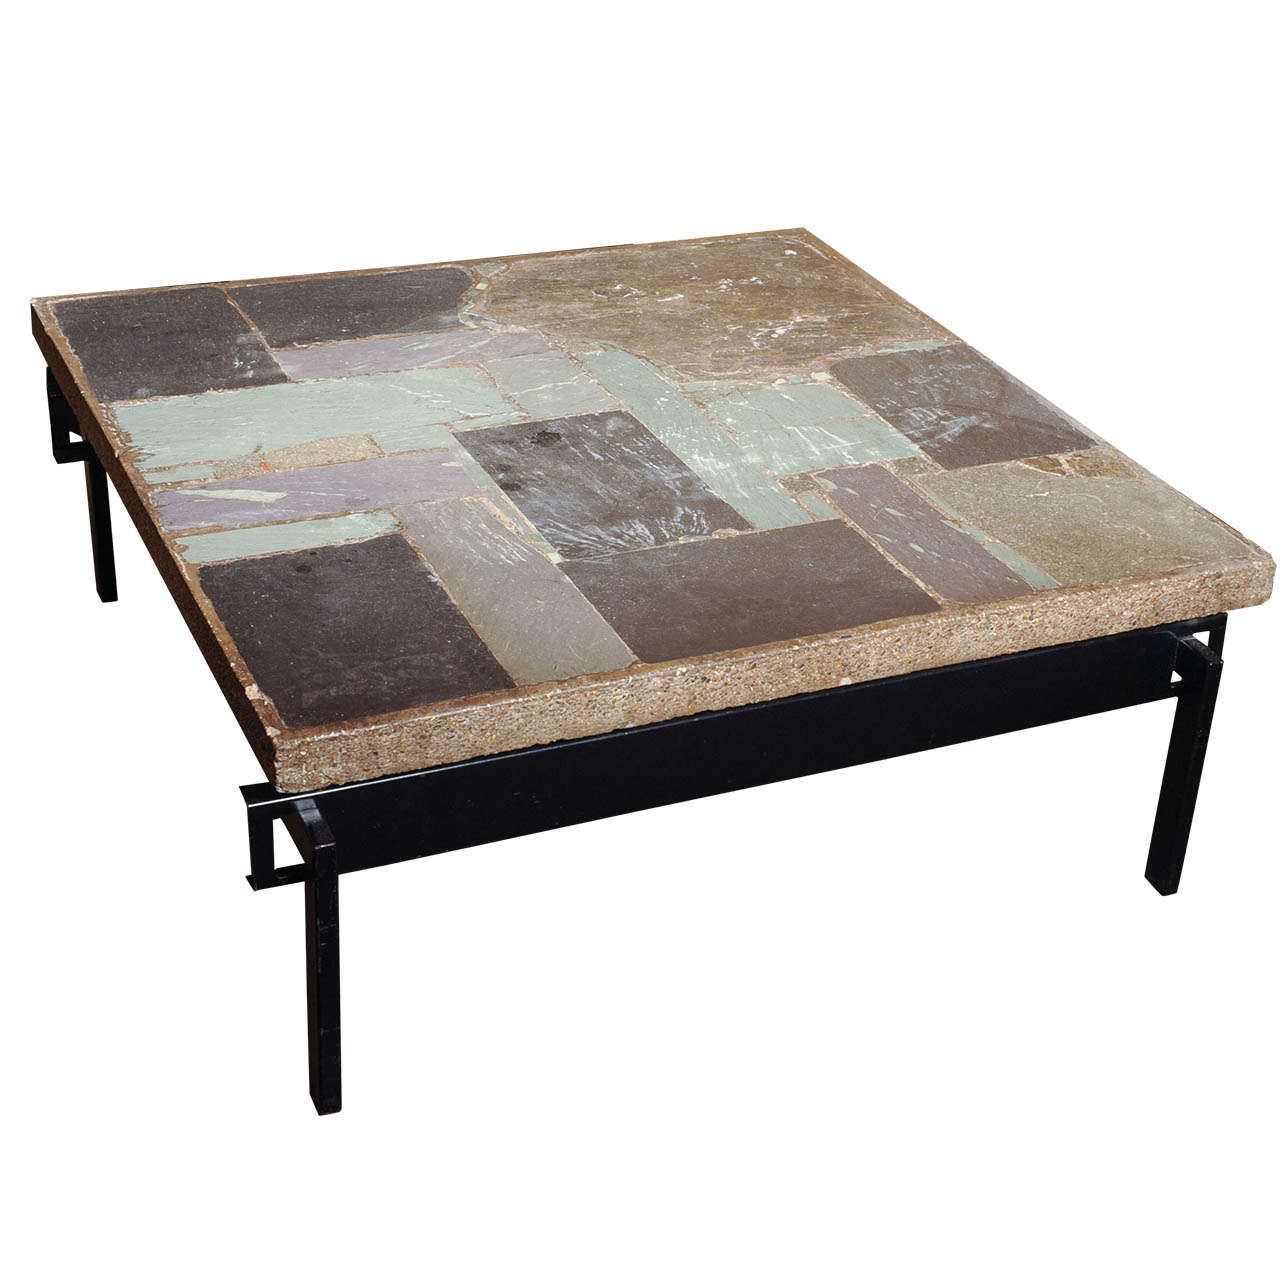 Wonderful slate stone coffee table by paul kingma at 1stdibs Stone coffee table